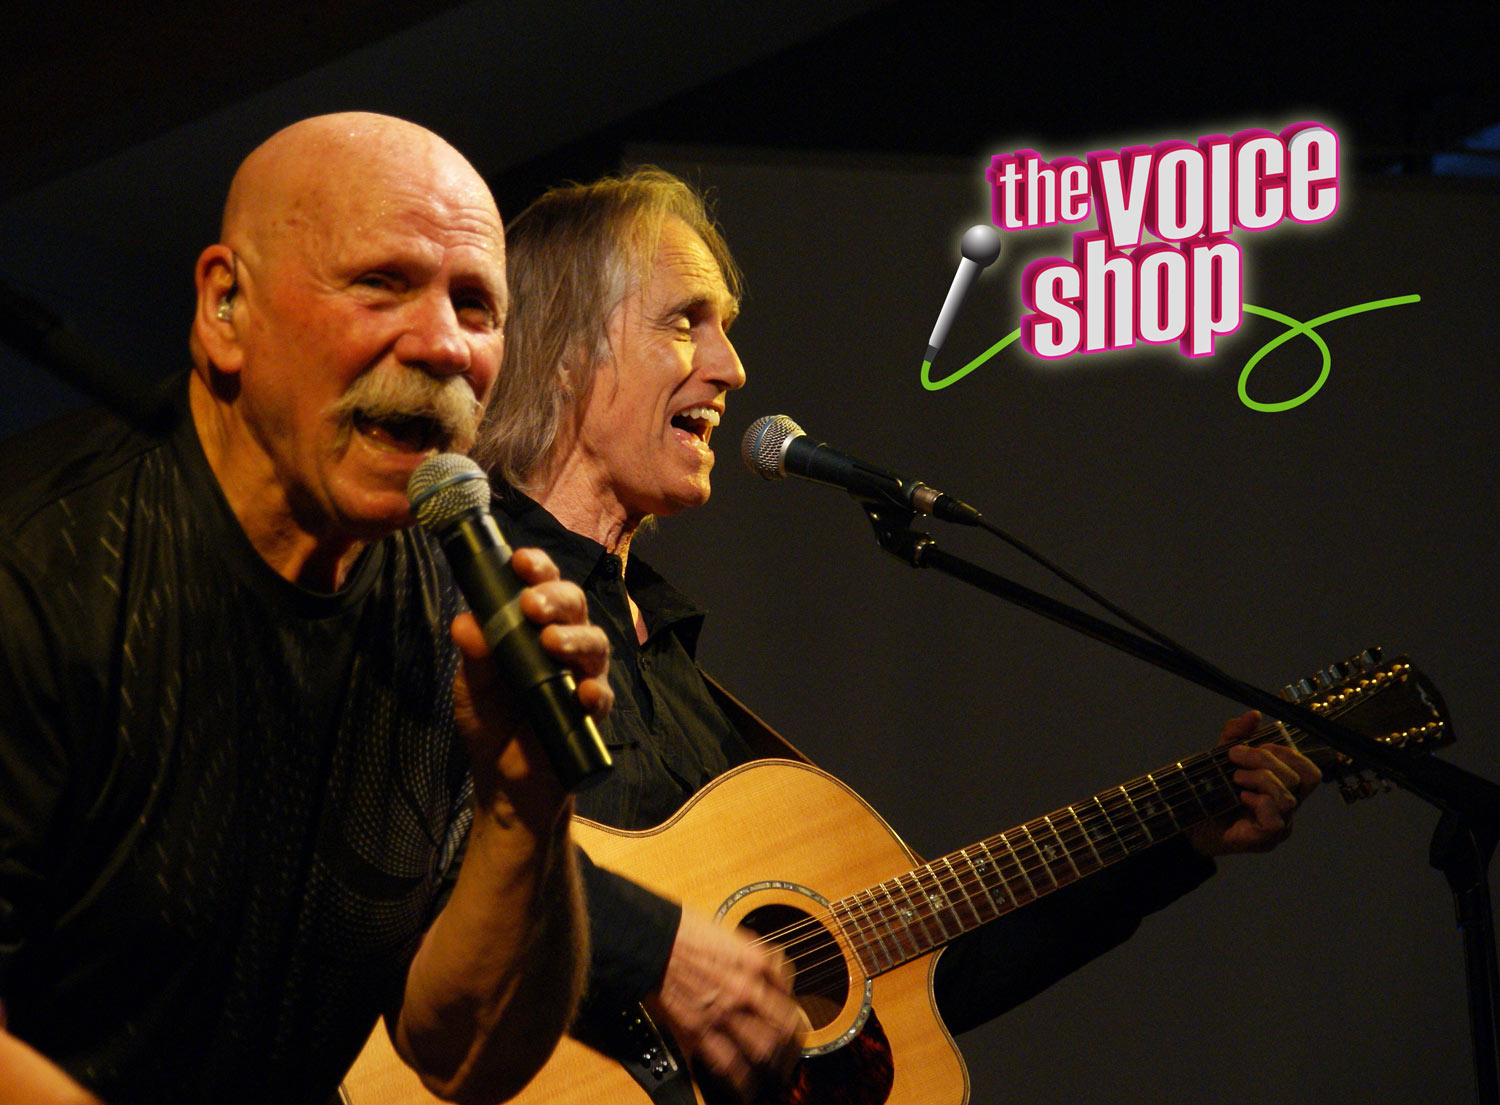 Barry MaGuire at the Voice Shop April 5th